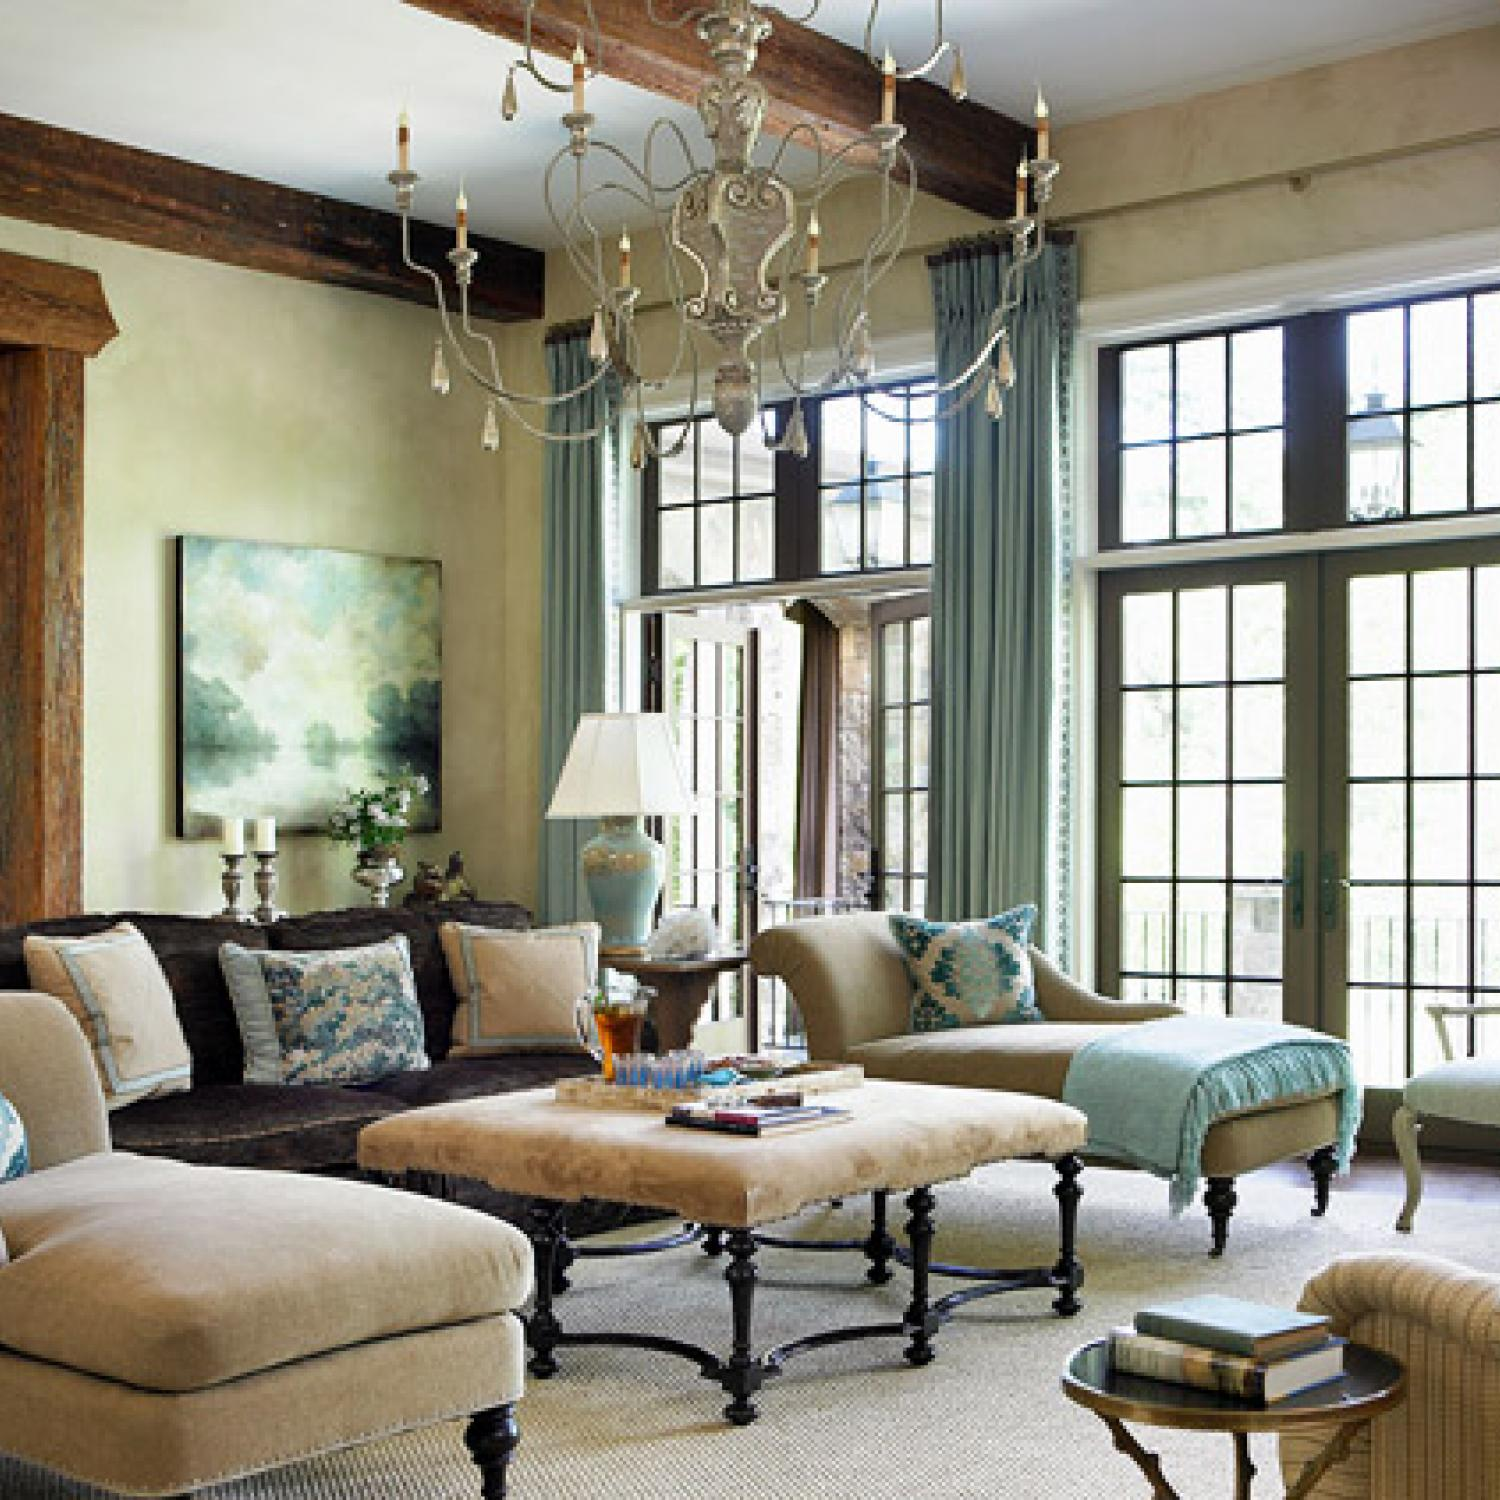 Home Design Ideas Classy: Elegant And Family-Friendly Atlanta Home